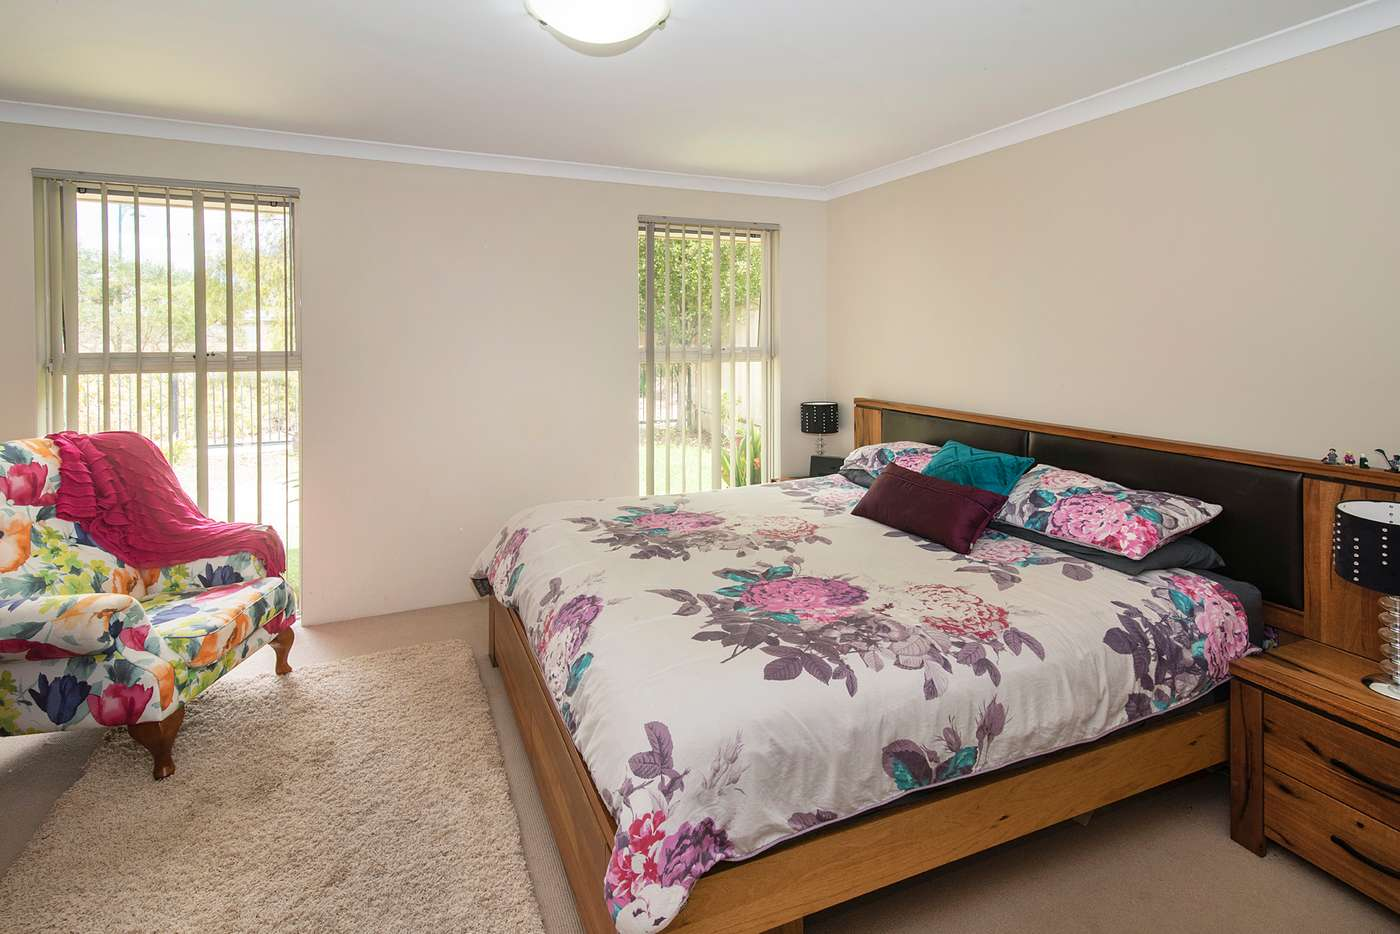 Sixth view of Homely house listing, 101 Broadwater Boulevard, Broadwater WA 6280